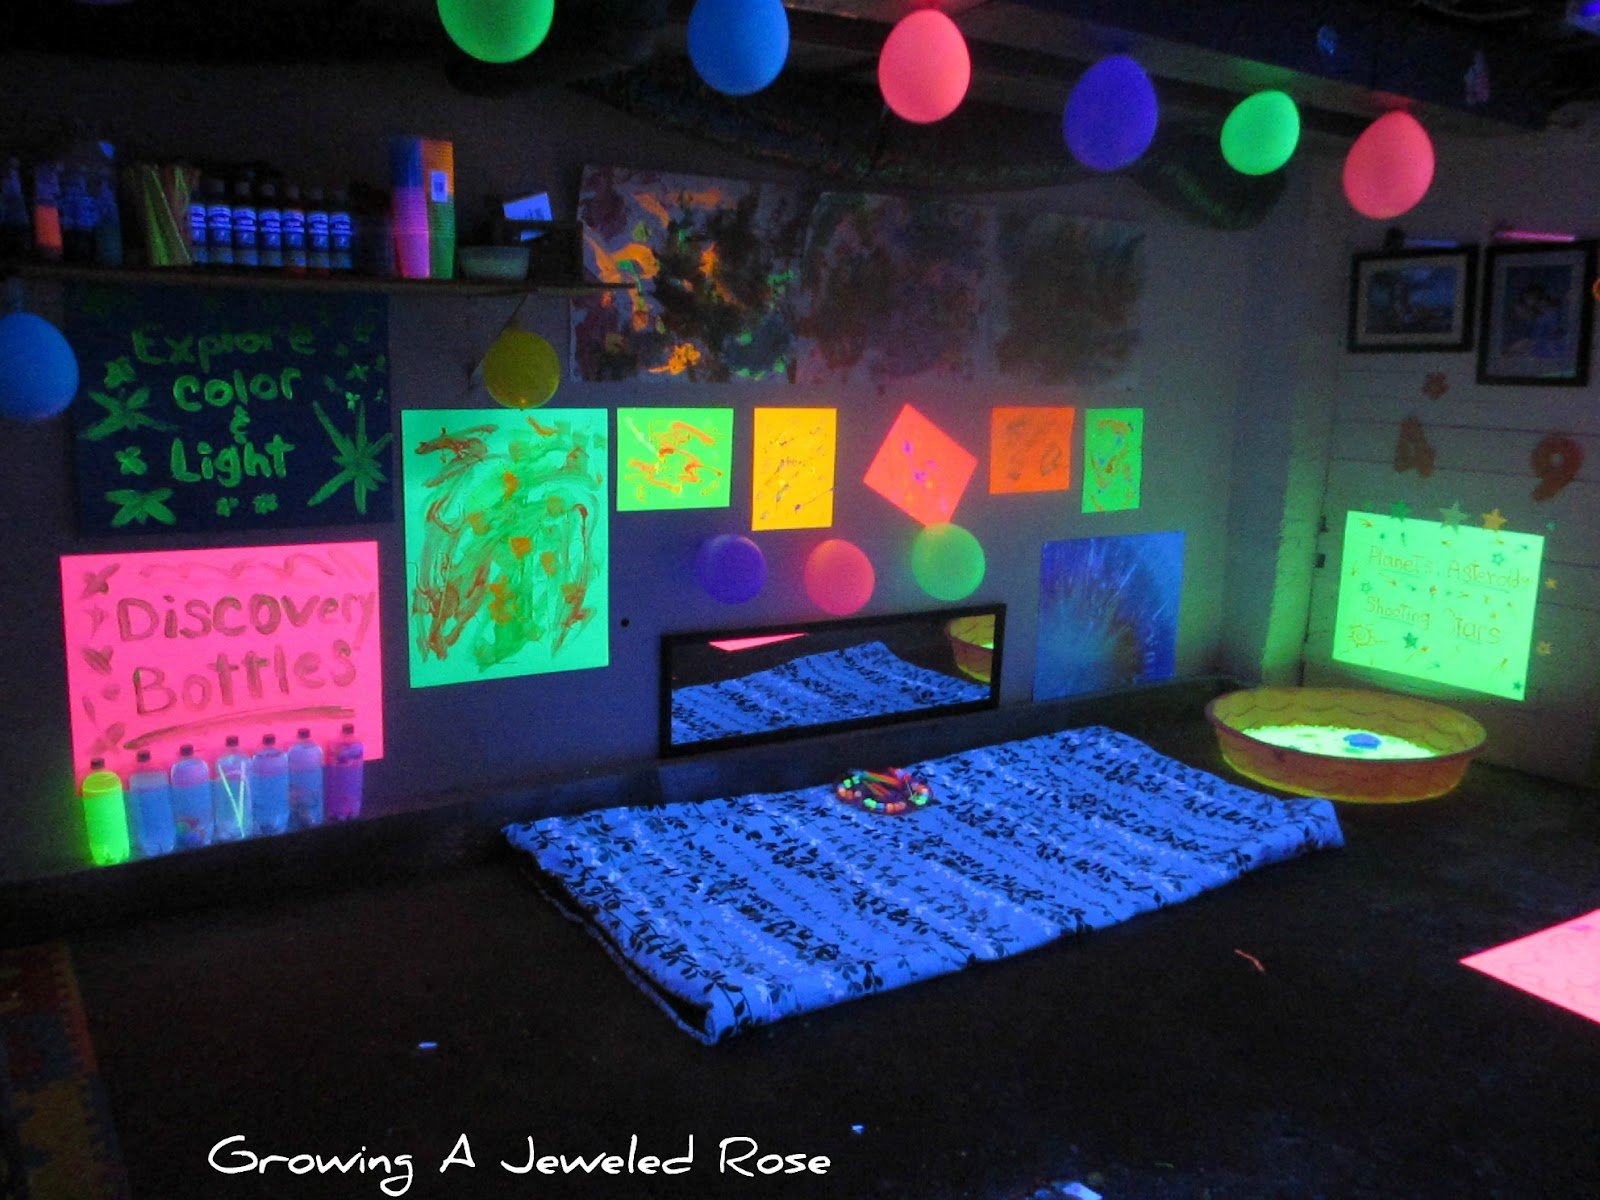 & Black Light Themed Party for Kids | Growing A Jeweled Rose